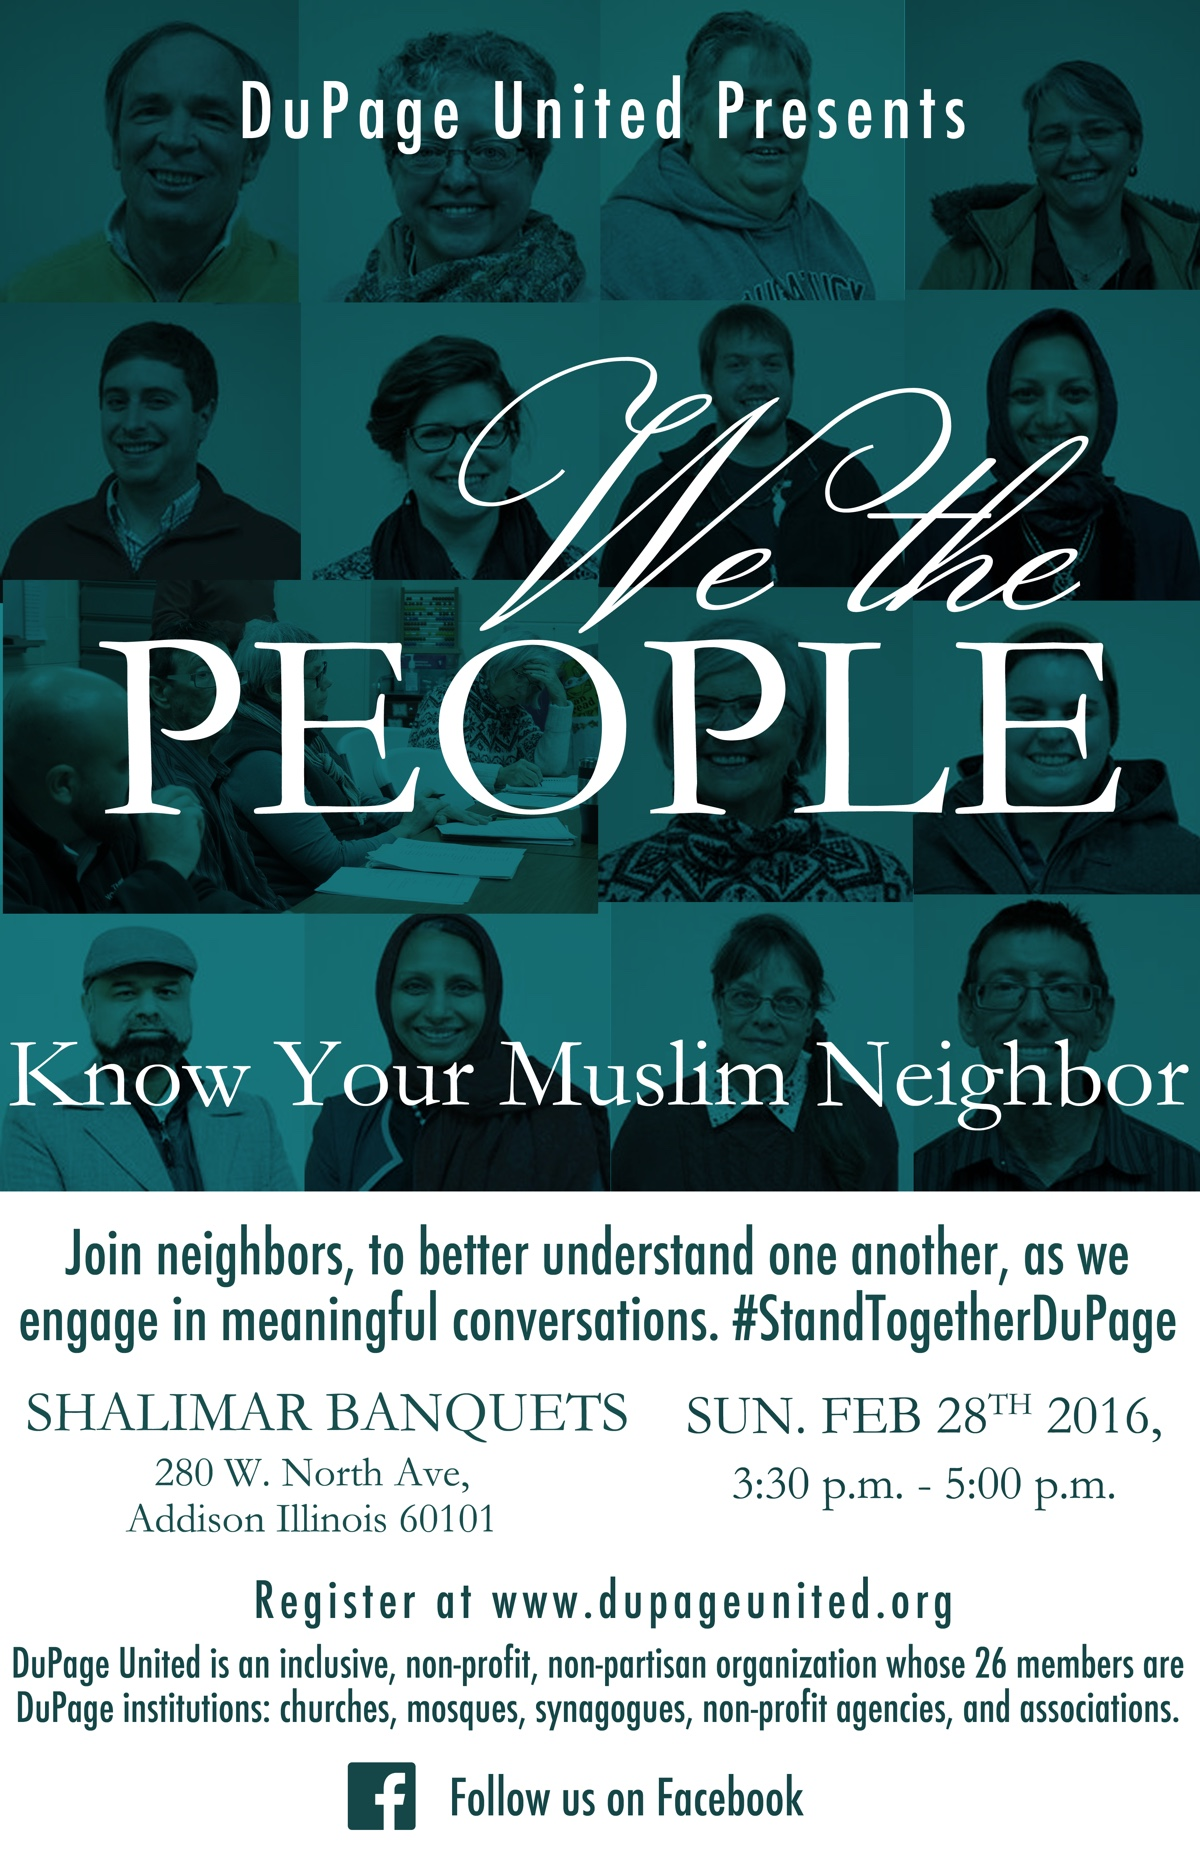 ogden muslim The following provides some news and information on ogden mosques:   .